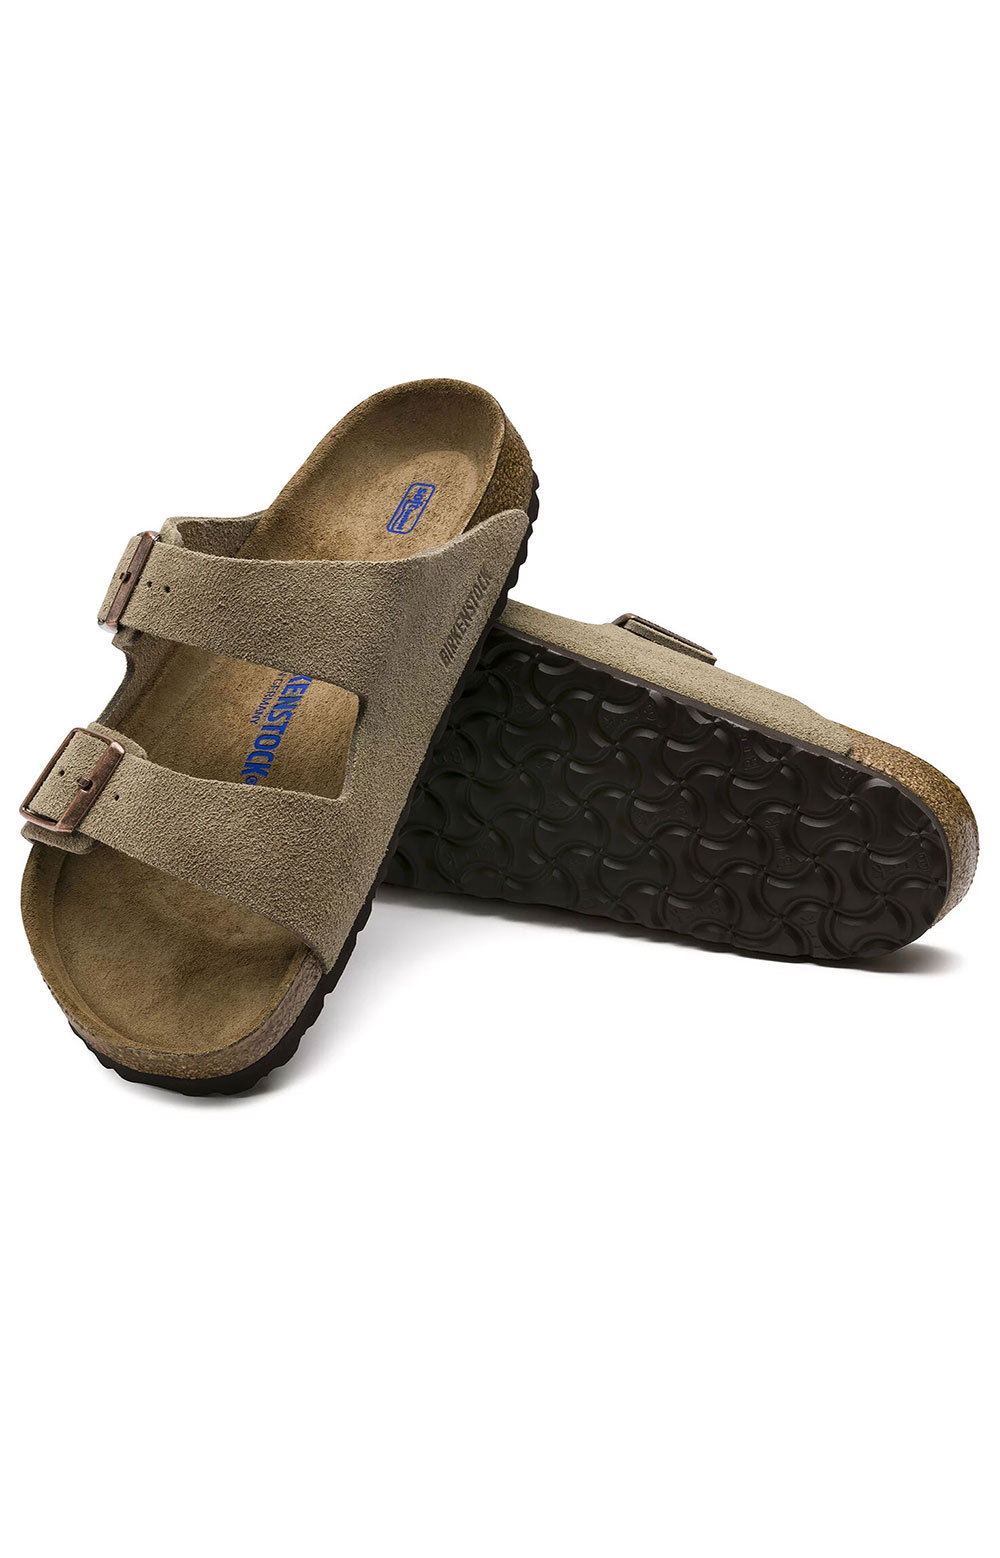 (0951303) Arizona Soft Foodbed Sandals - Taupe 6